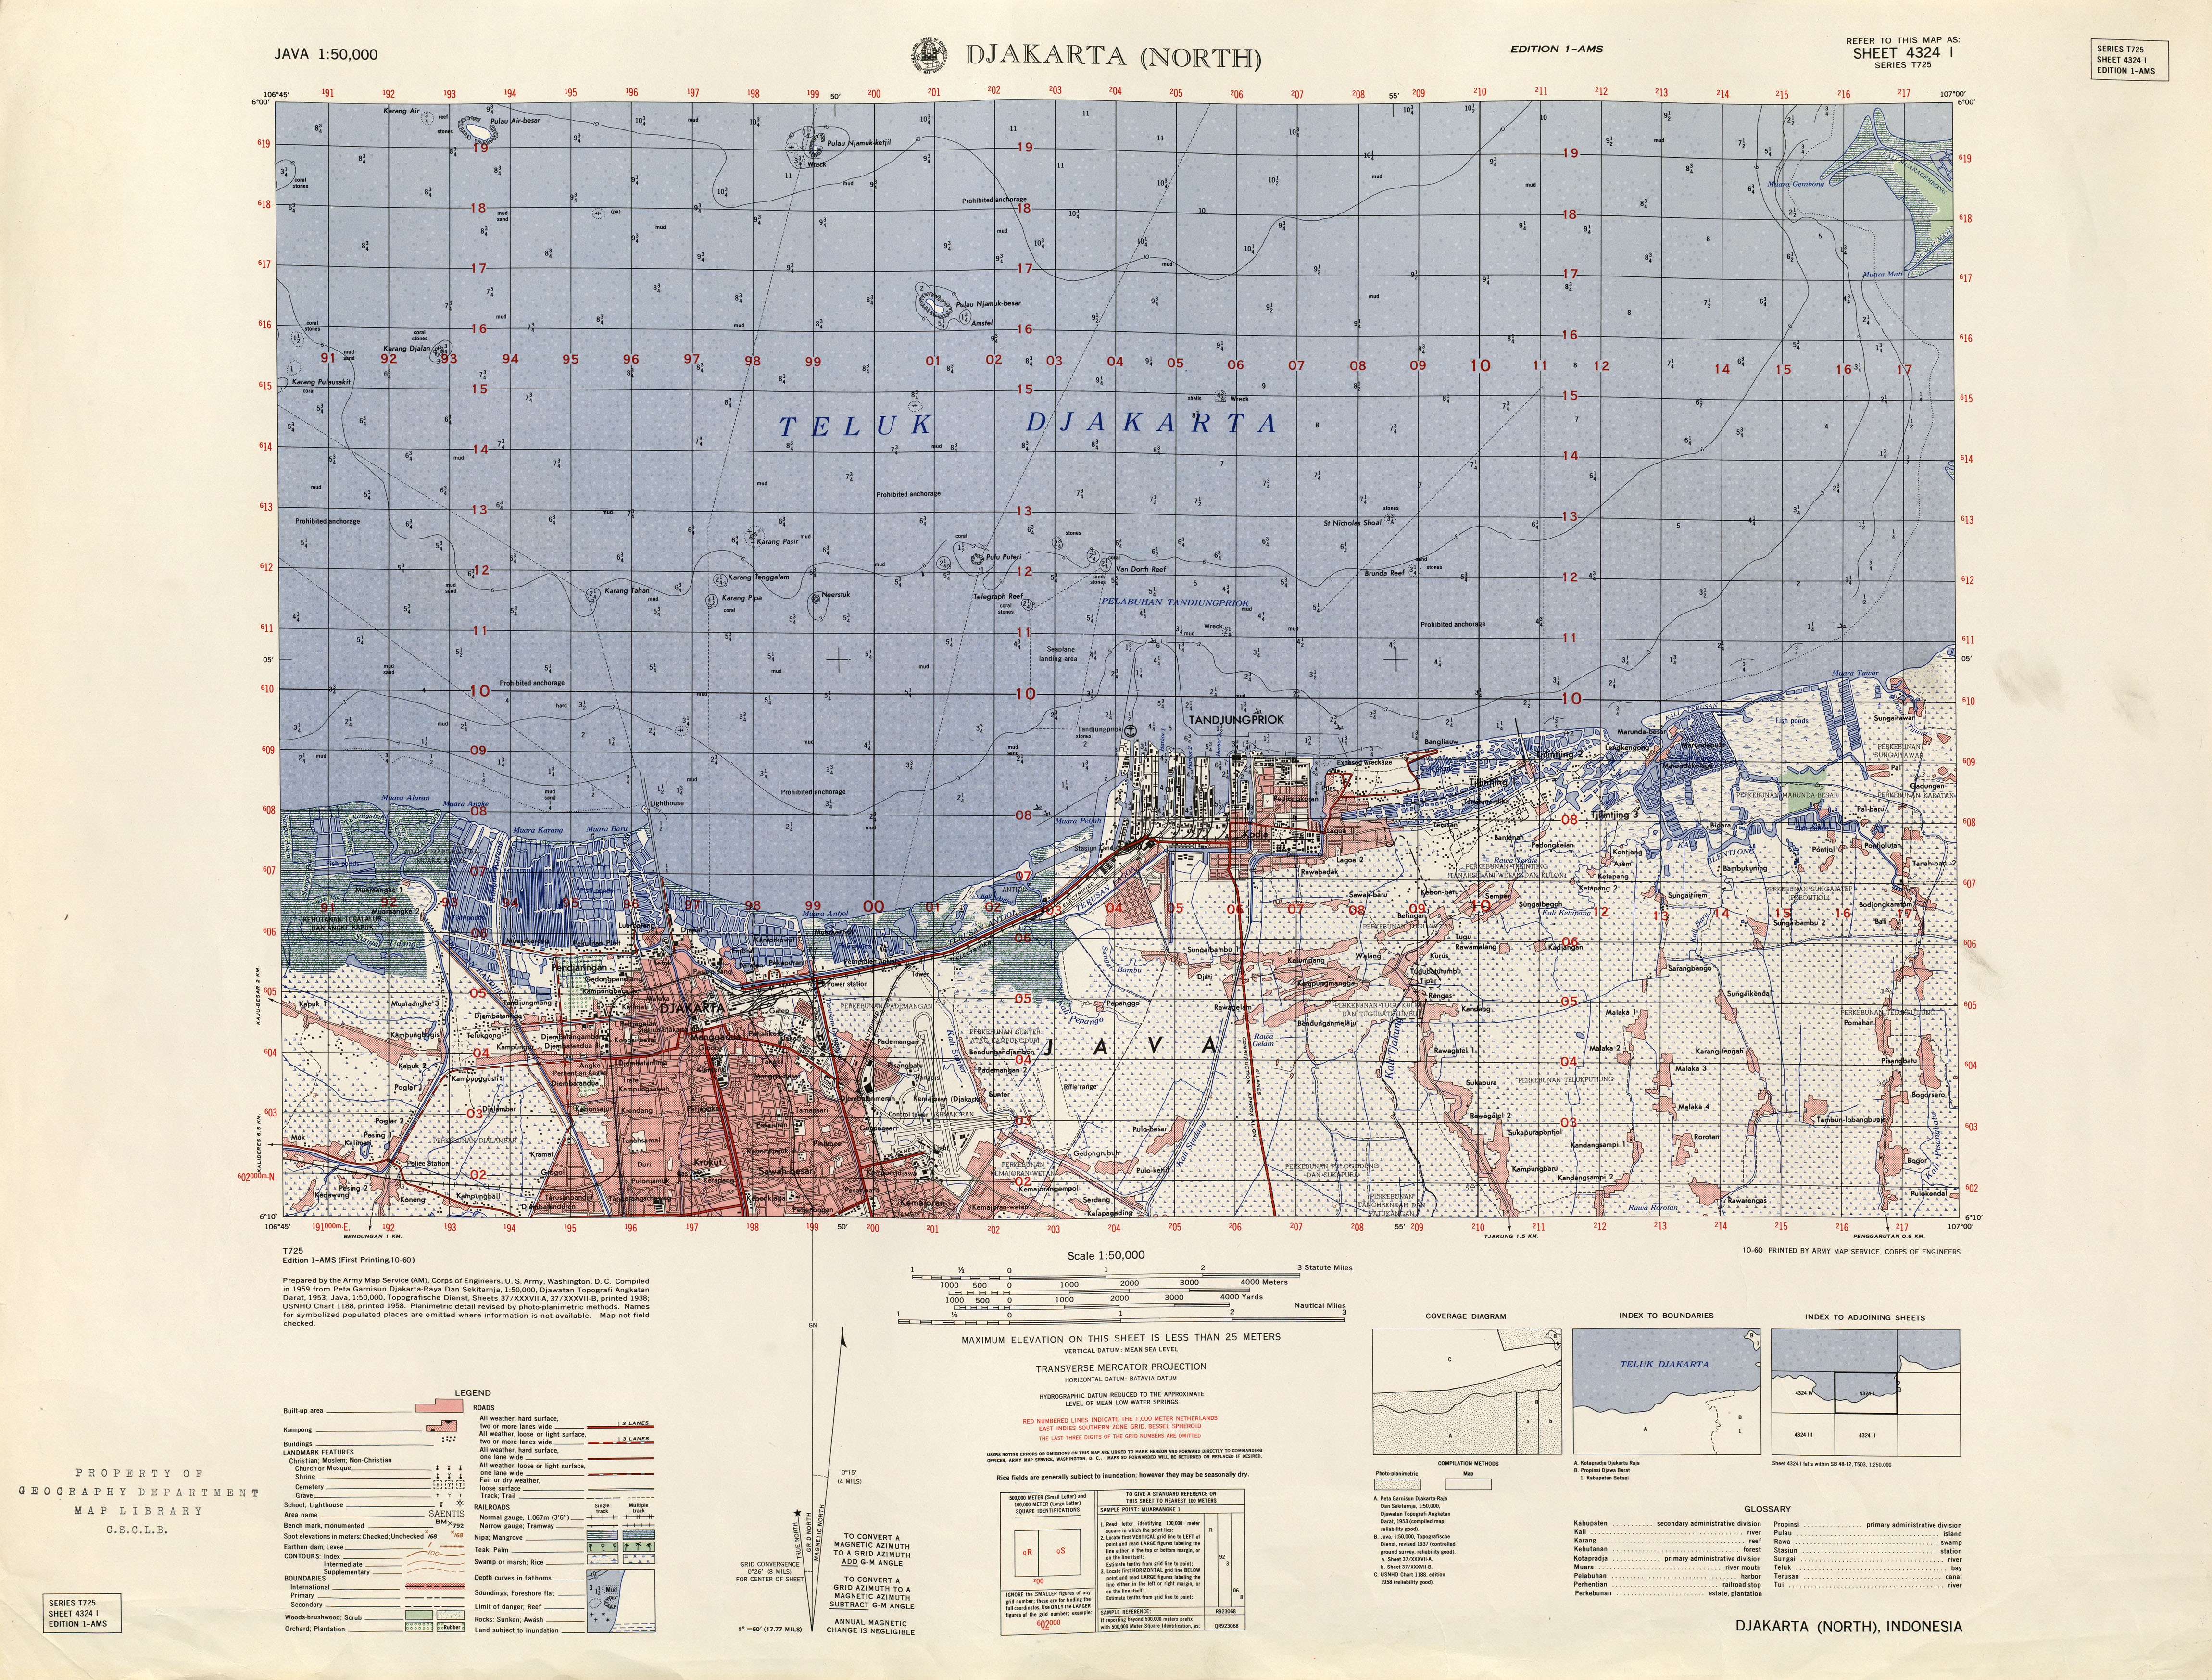 Indonesia maps perry castaeda map collection ut library online us army map service 1959 39mb gumiabroncs Images